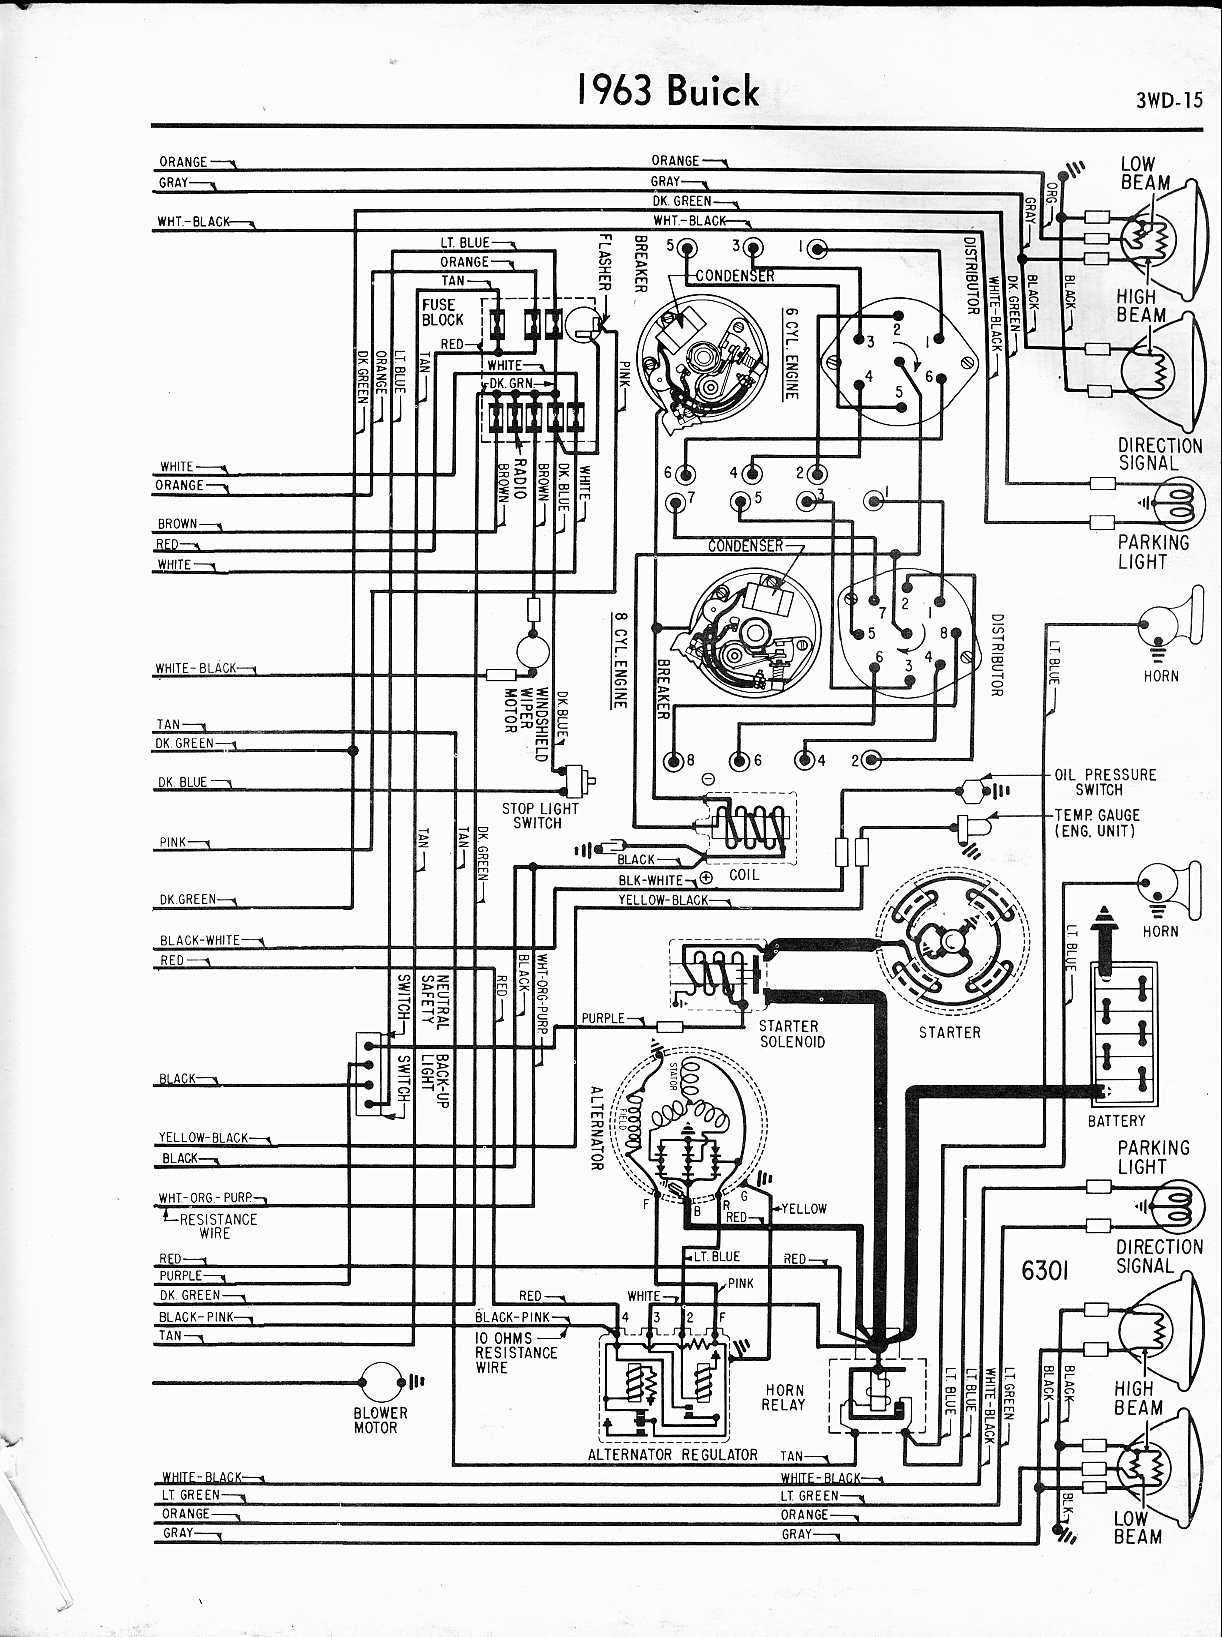 1970 Buick 455 Wiring Diagram Wiring Diagram Correction Correction Cfcarsnoleggio It